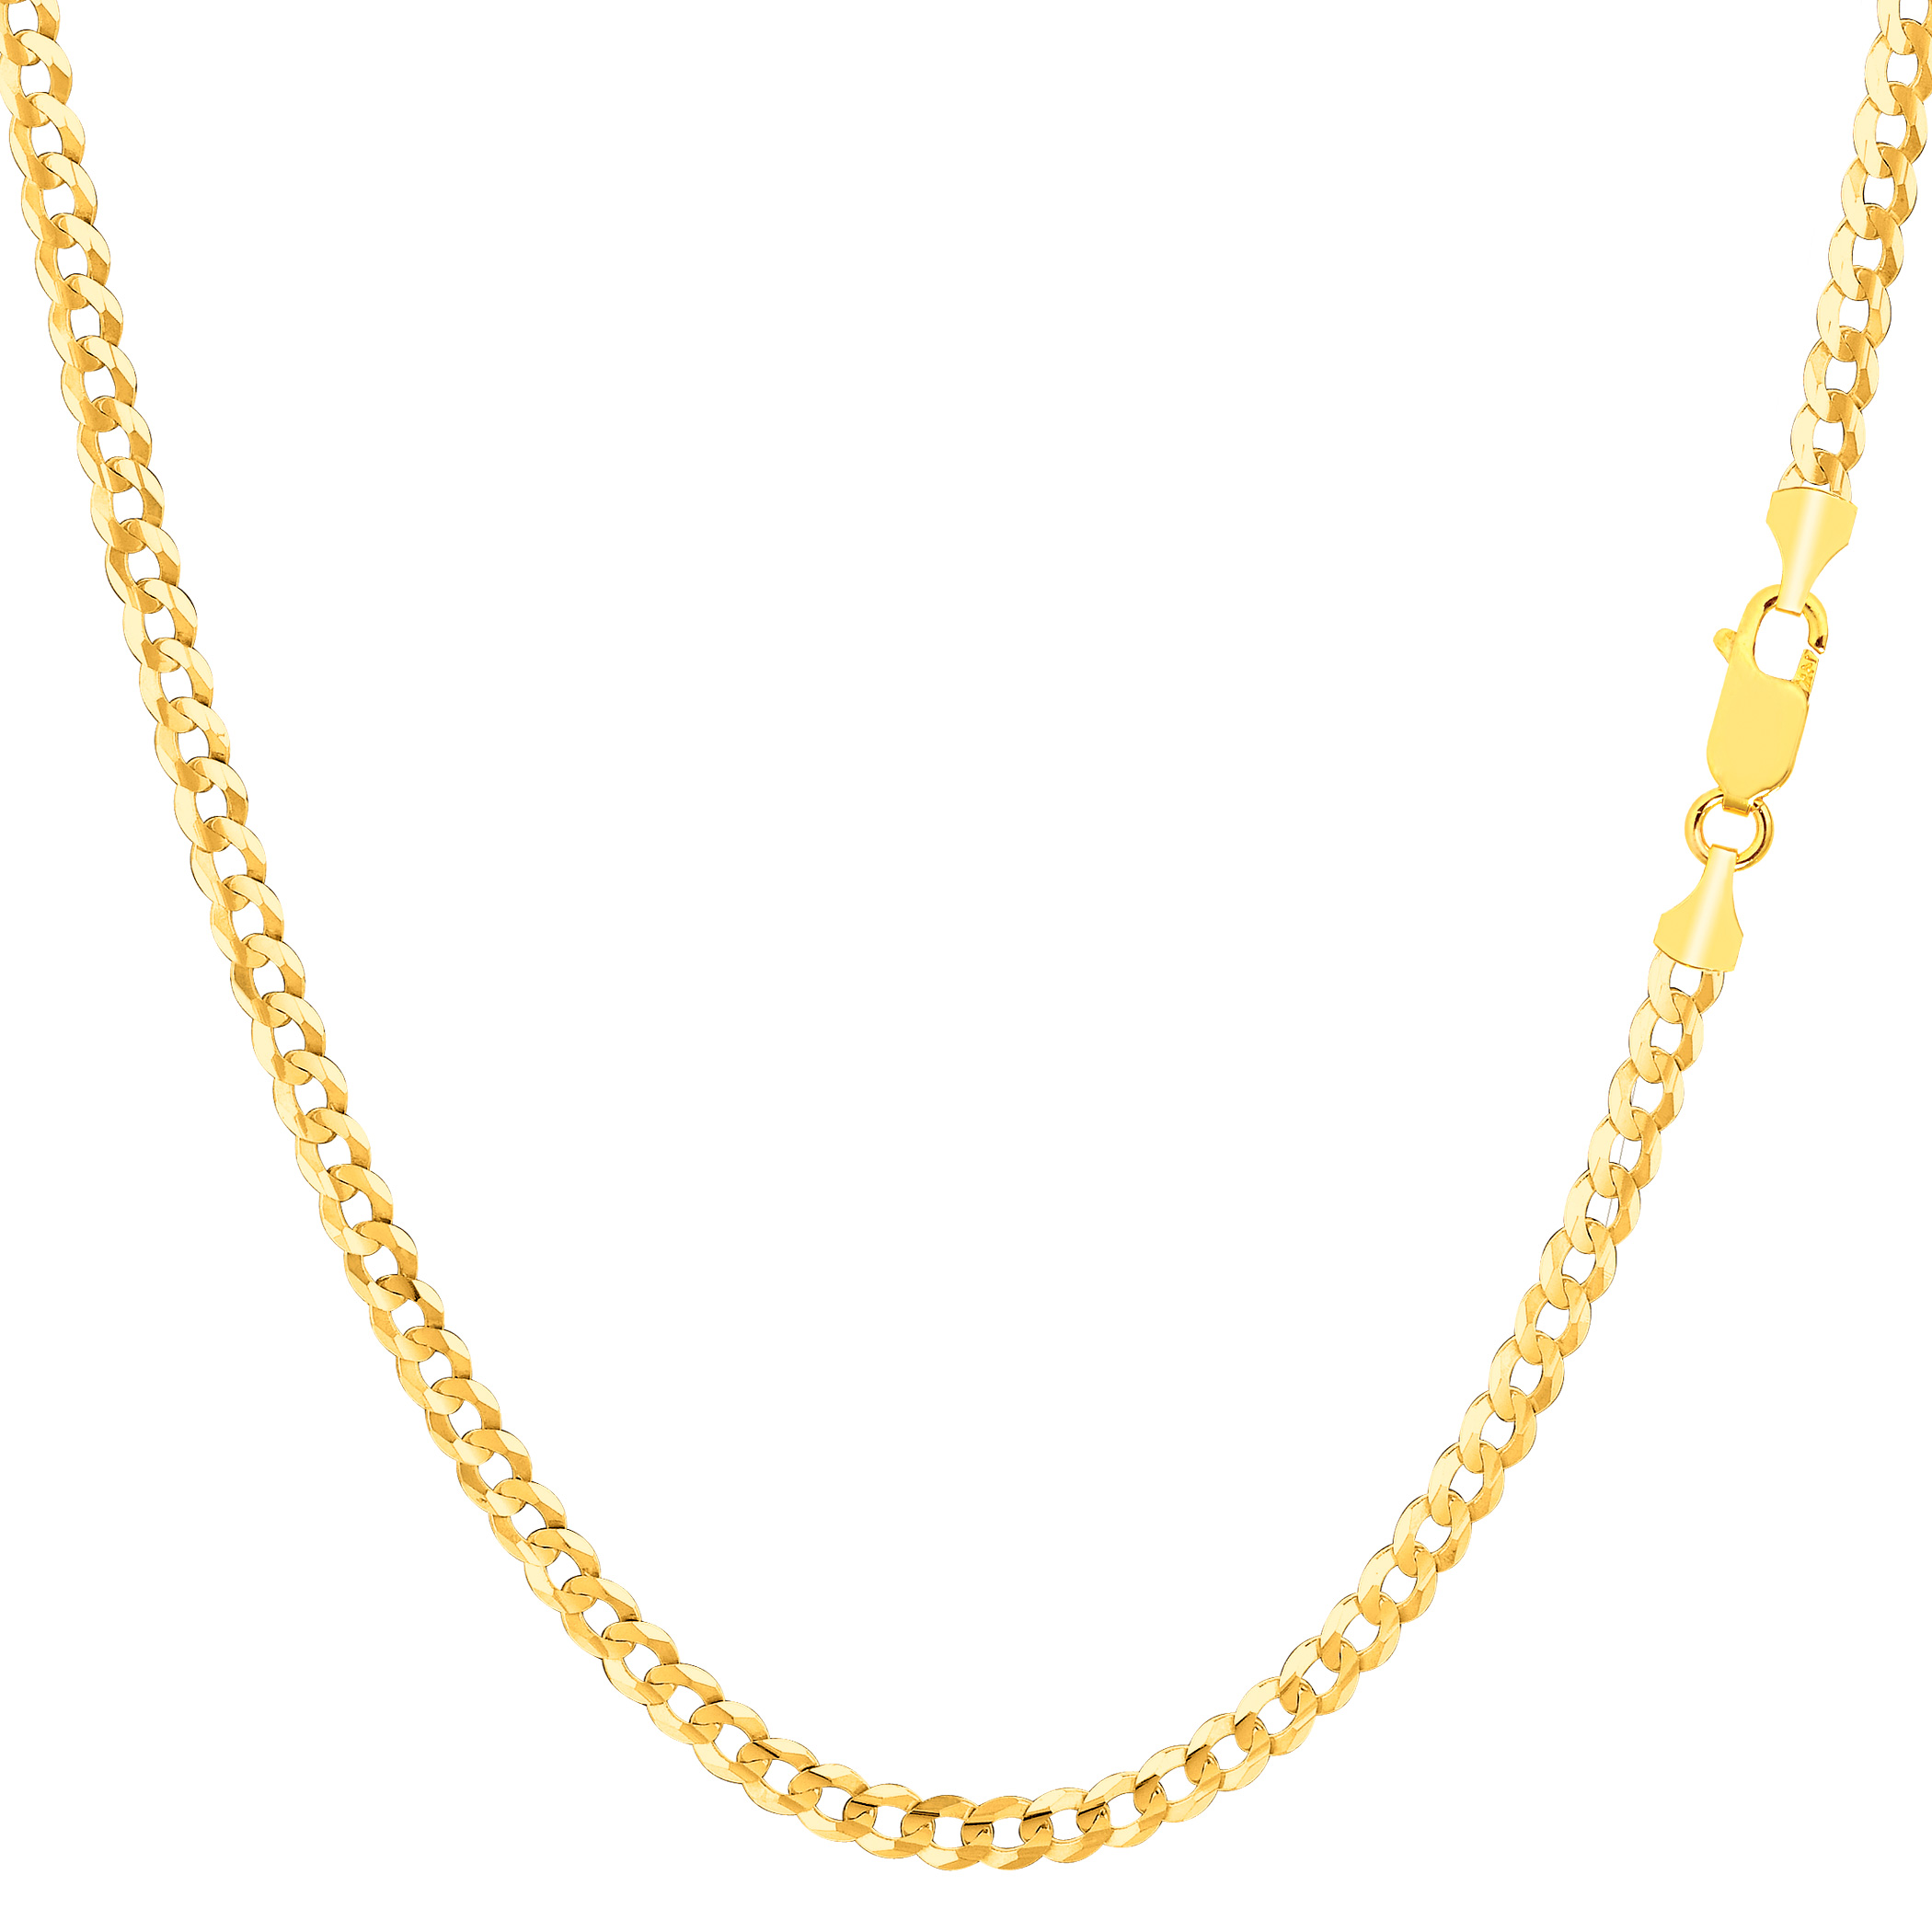 """10k Yellow Gold Comfort Curb Chain Necklace, 2.6mm, 18"""" - image 1 of 1"""